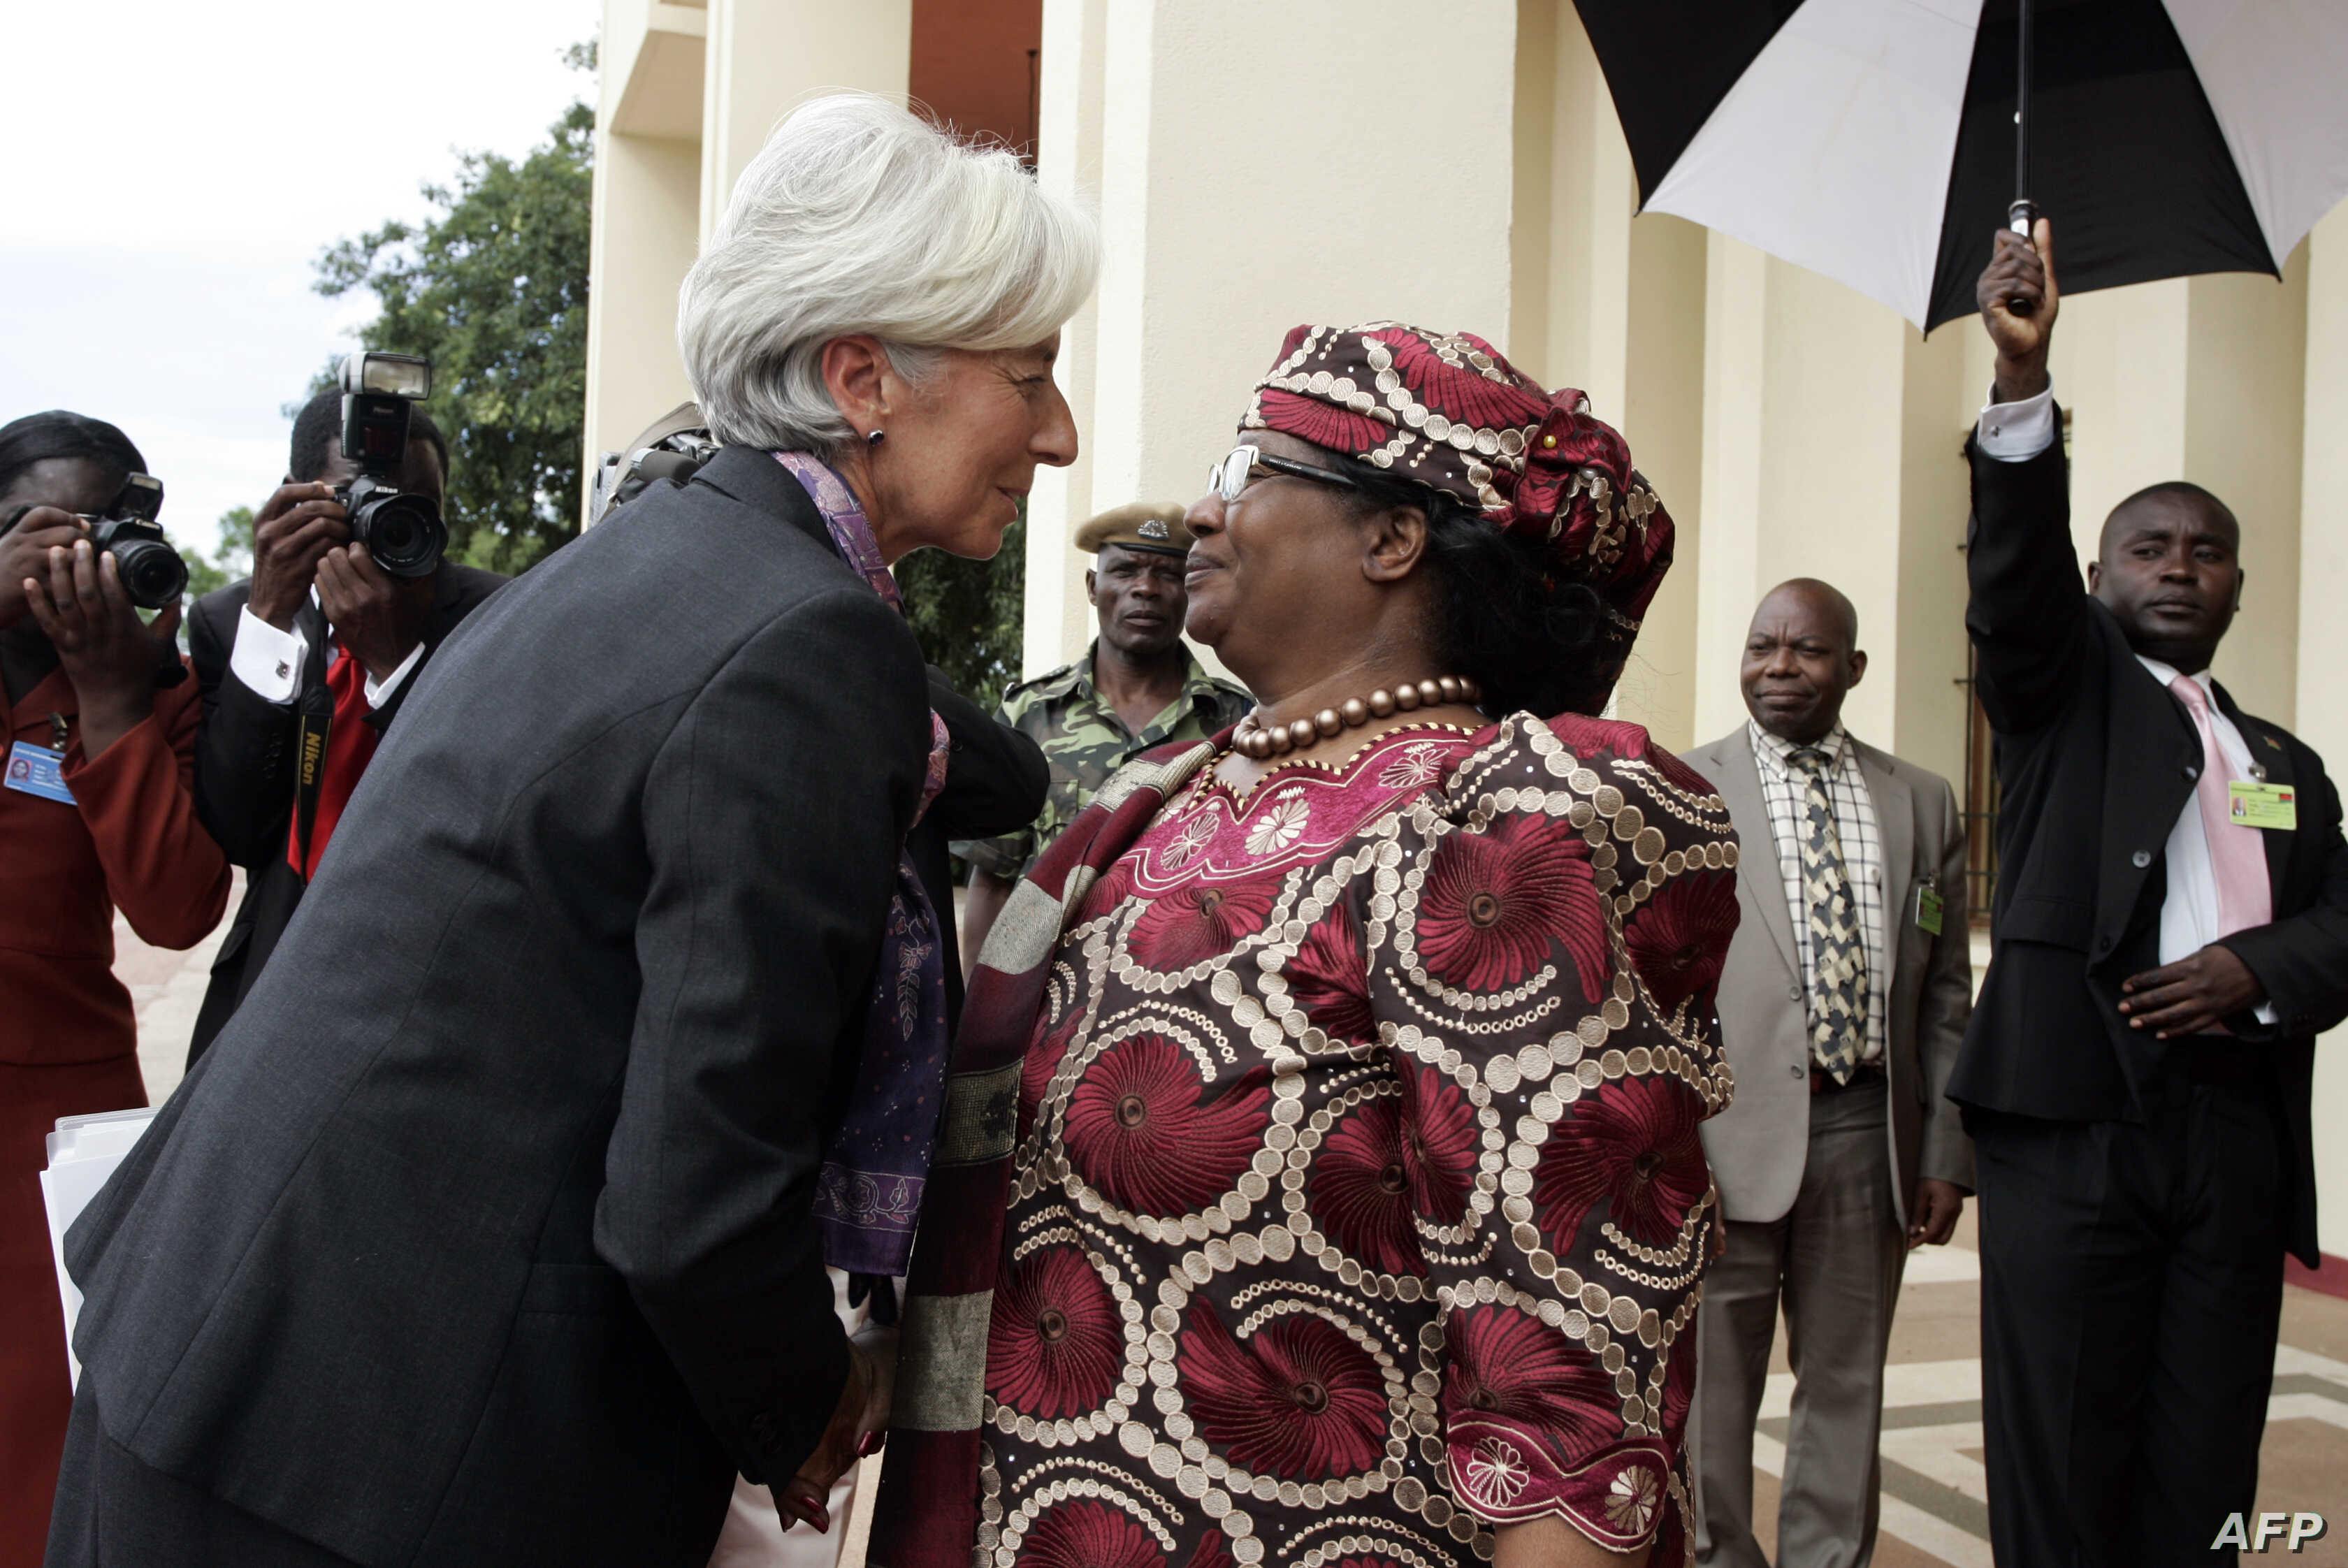 IMF Lifts Suspension of Funds to Malawi | Voice of America - English